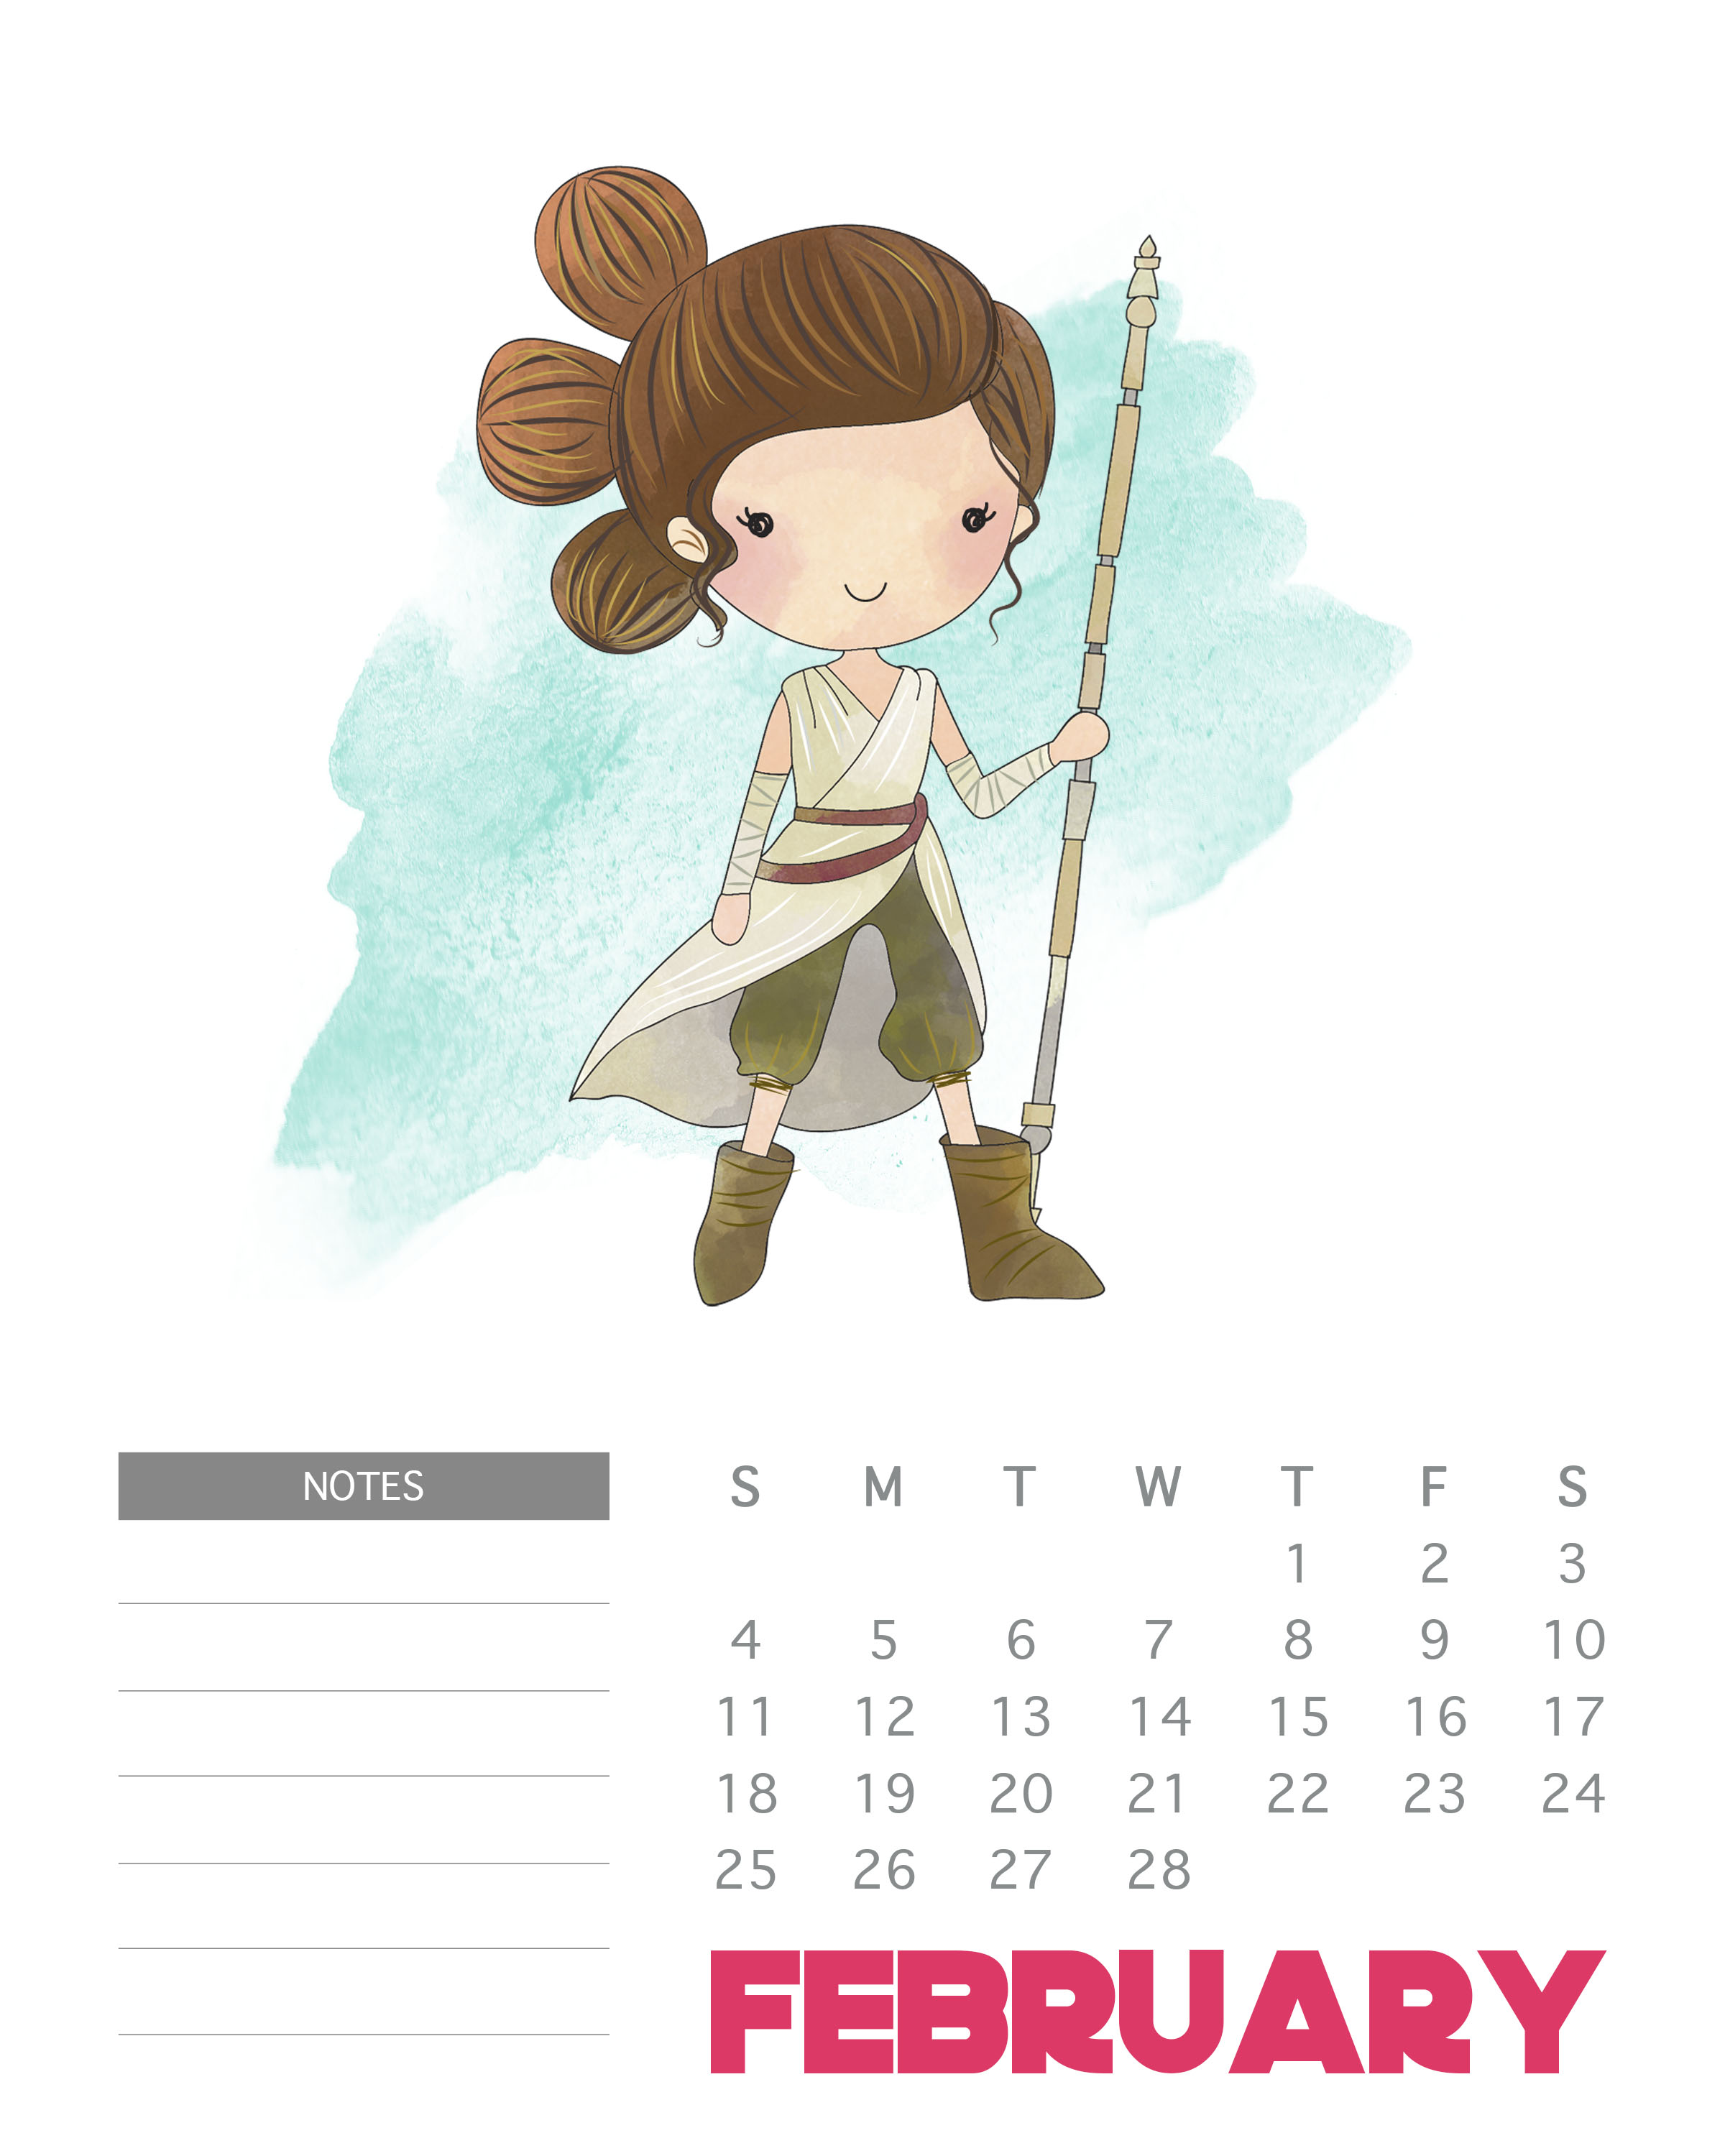 February 2018 Star Wars Calendar Template